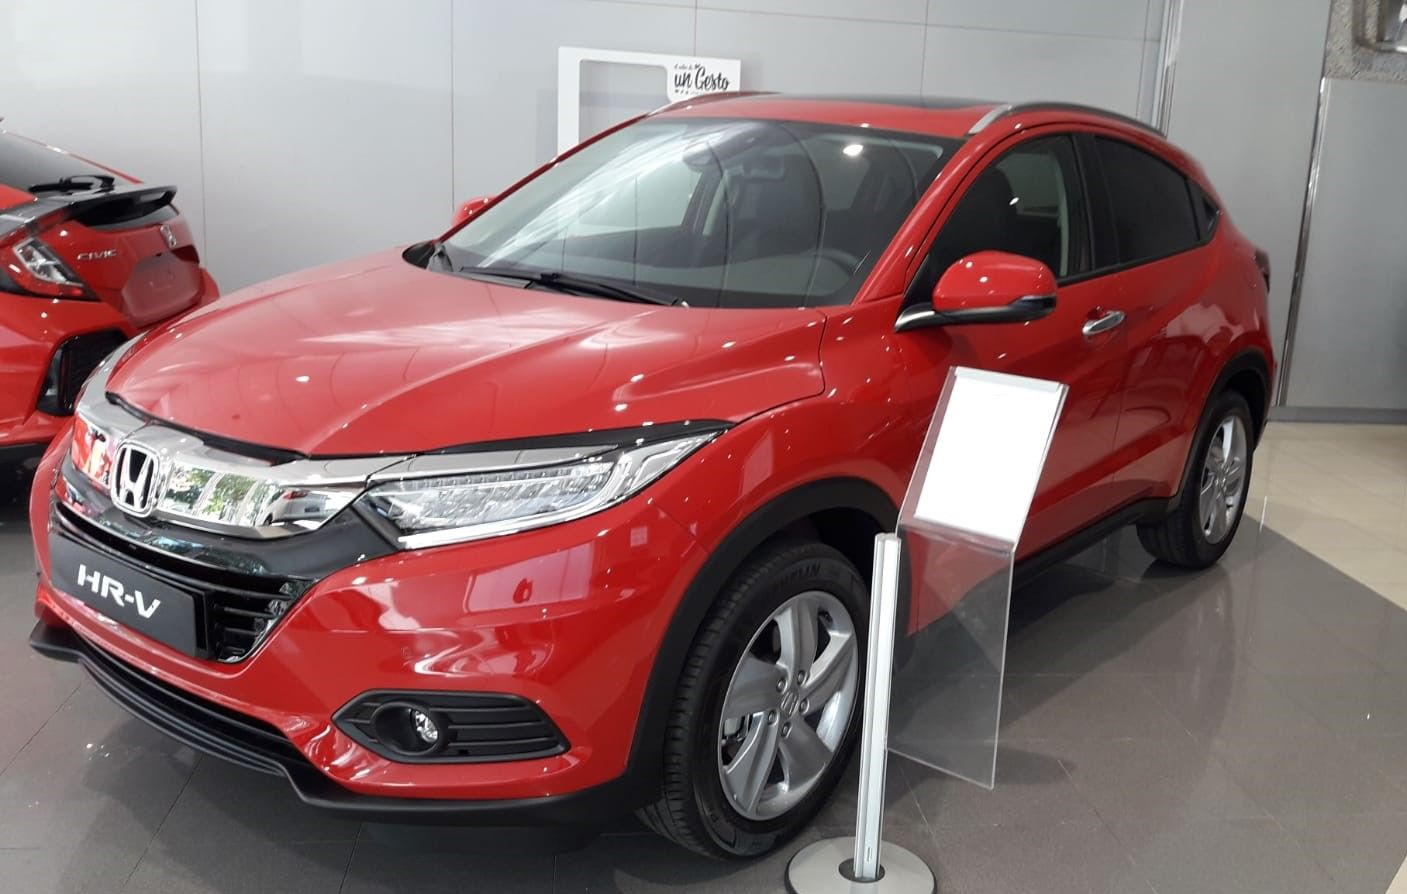 HONDA HR-V EXECUTIVE 1.5 i-VTEC 130 CV